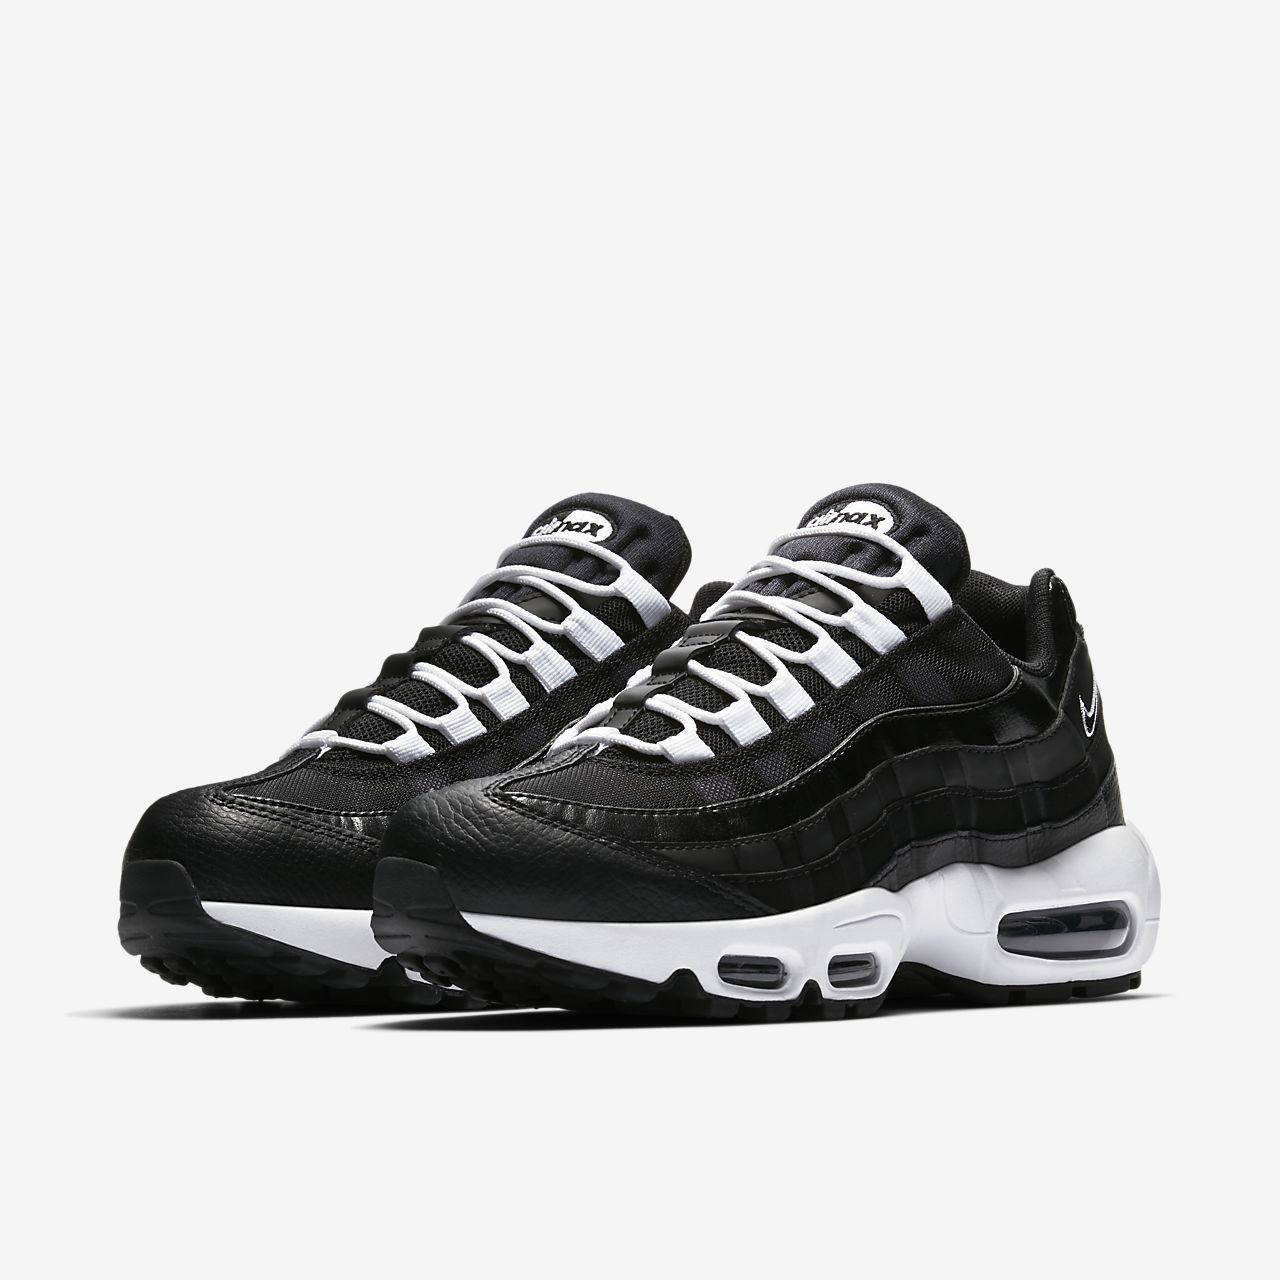 newest 7ee6d a271d ... coupon code for nike air max 95 og womens shoe 4eebb efc86